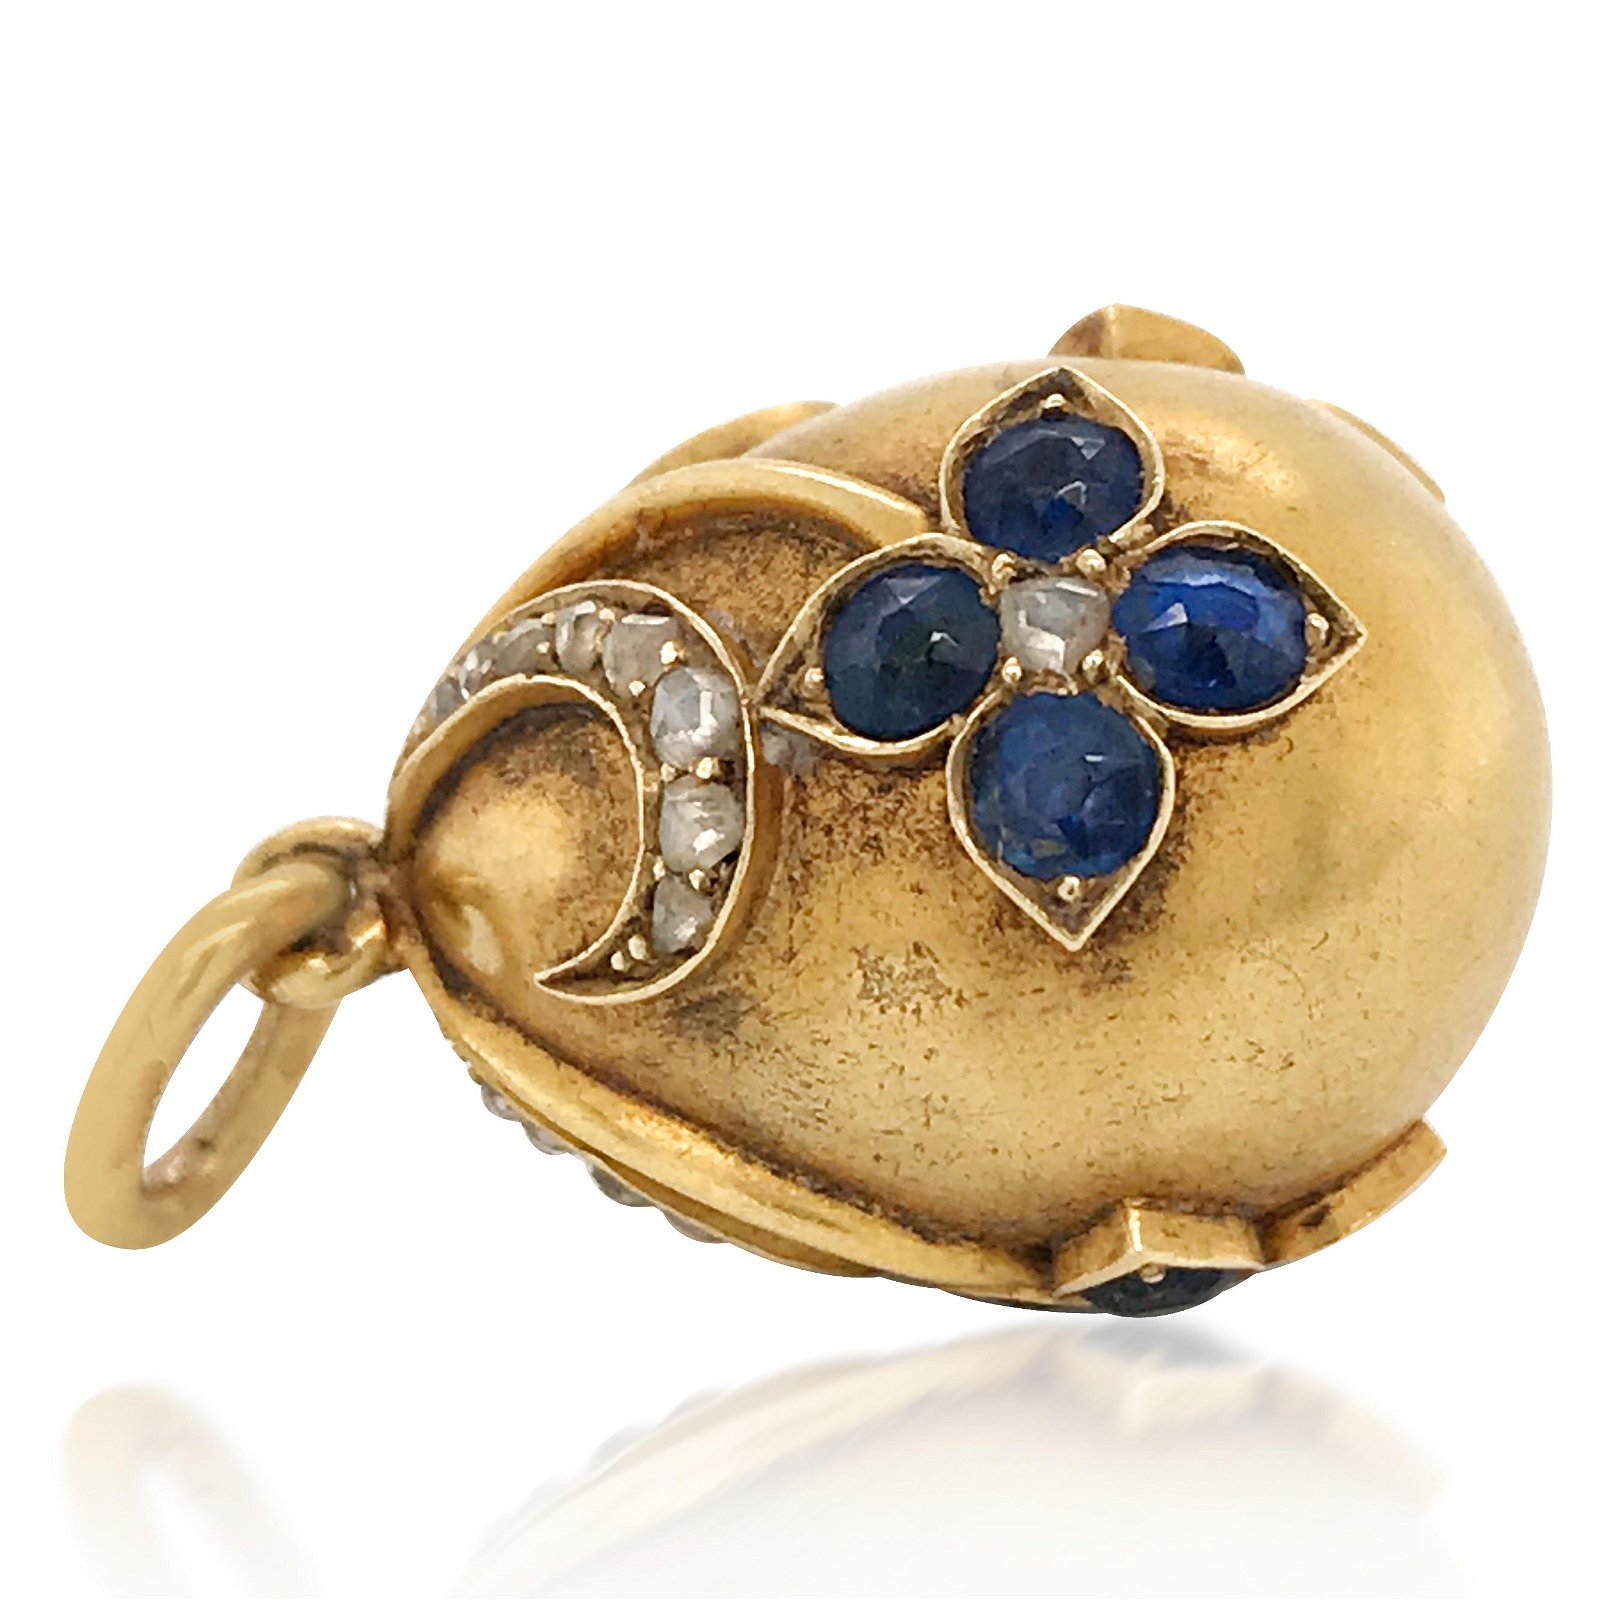 Faberge, Sapphire Gold Egg